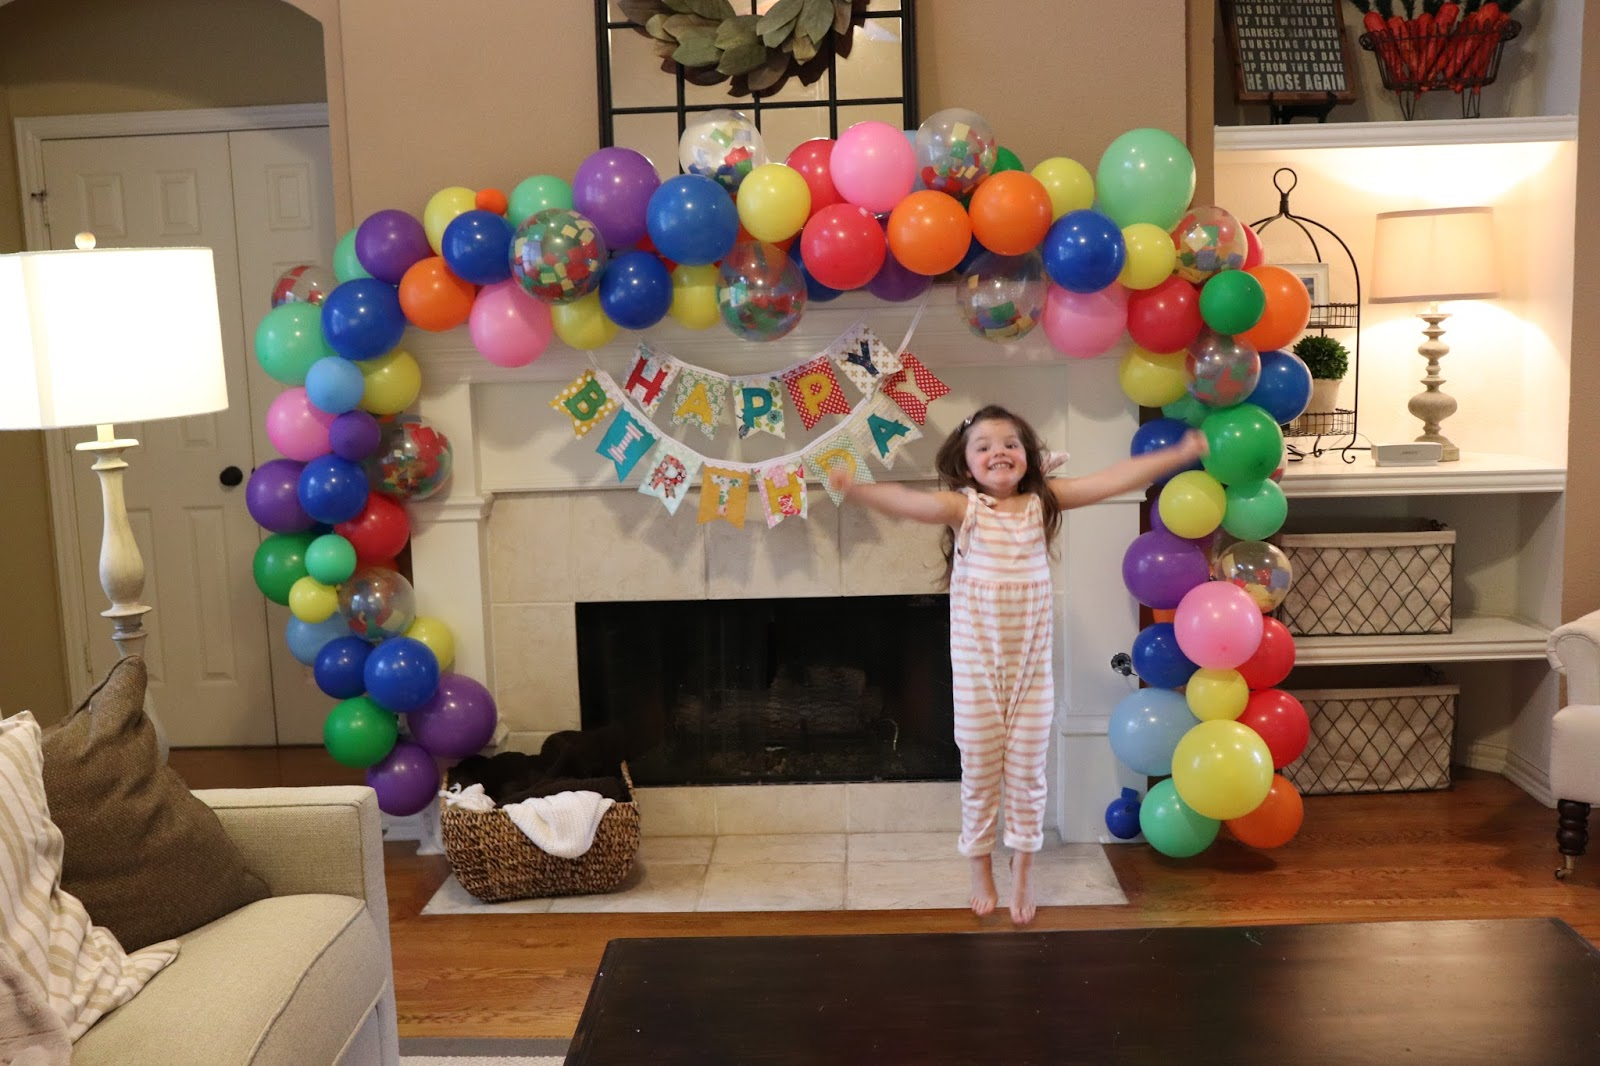 Birthday Mantle Balloon Arch Momfessionals Bloglovin Snap Circuits Sound Light Combo By Elenco On Barstons Childs Play Believe It Or Not Was Actually Super Simple I Purchased This Decorating Strip Bought The 25 Roll At Party City For 5